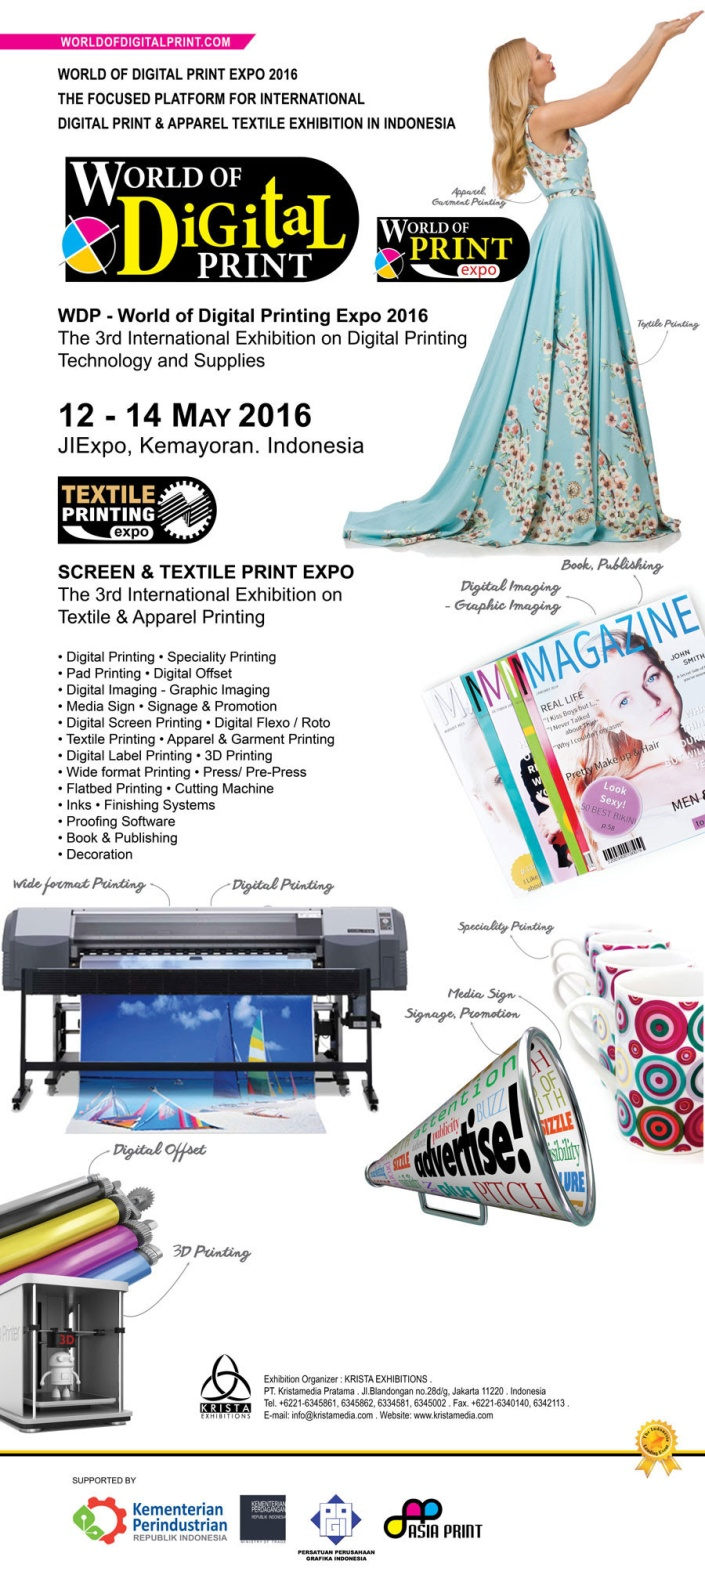 WORLD OF DIGITAL PRINT EXPO 2016